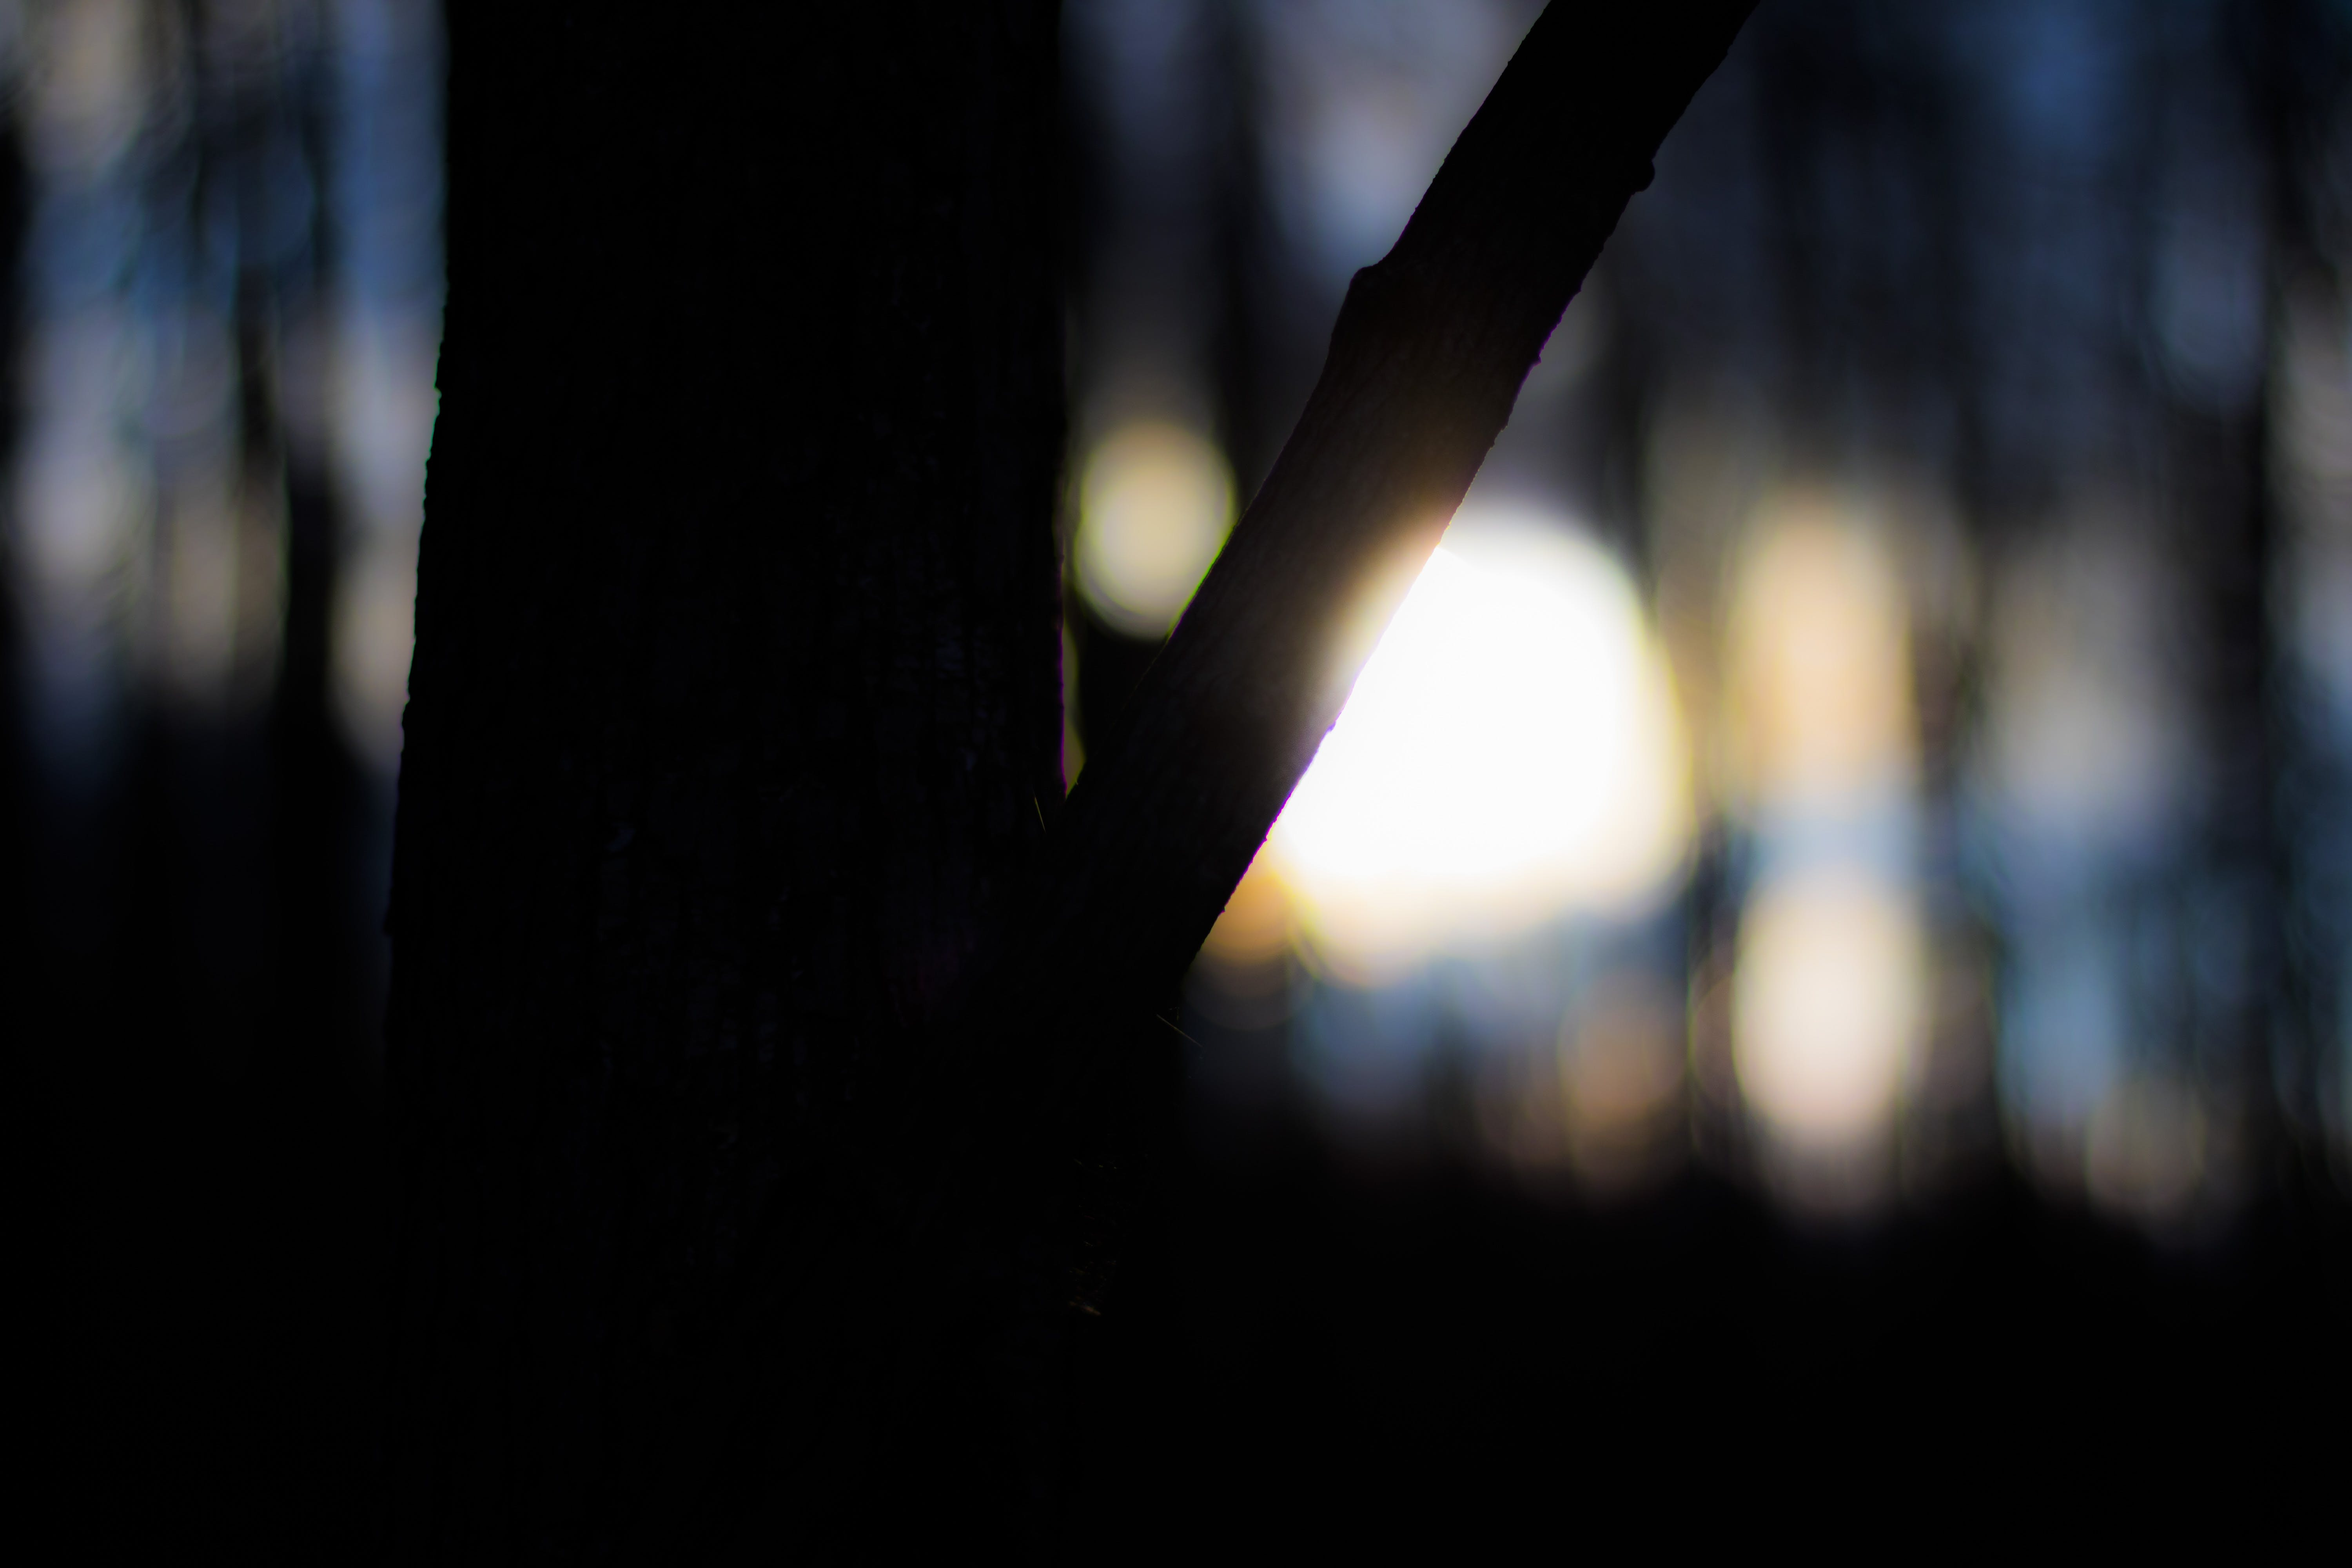 Silhouette of Tree Bokeh Photography